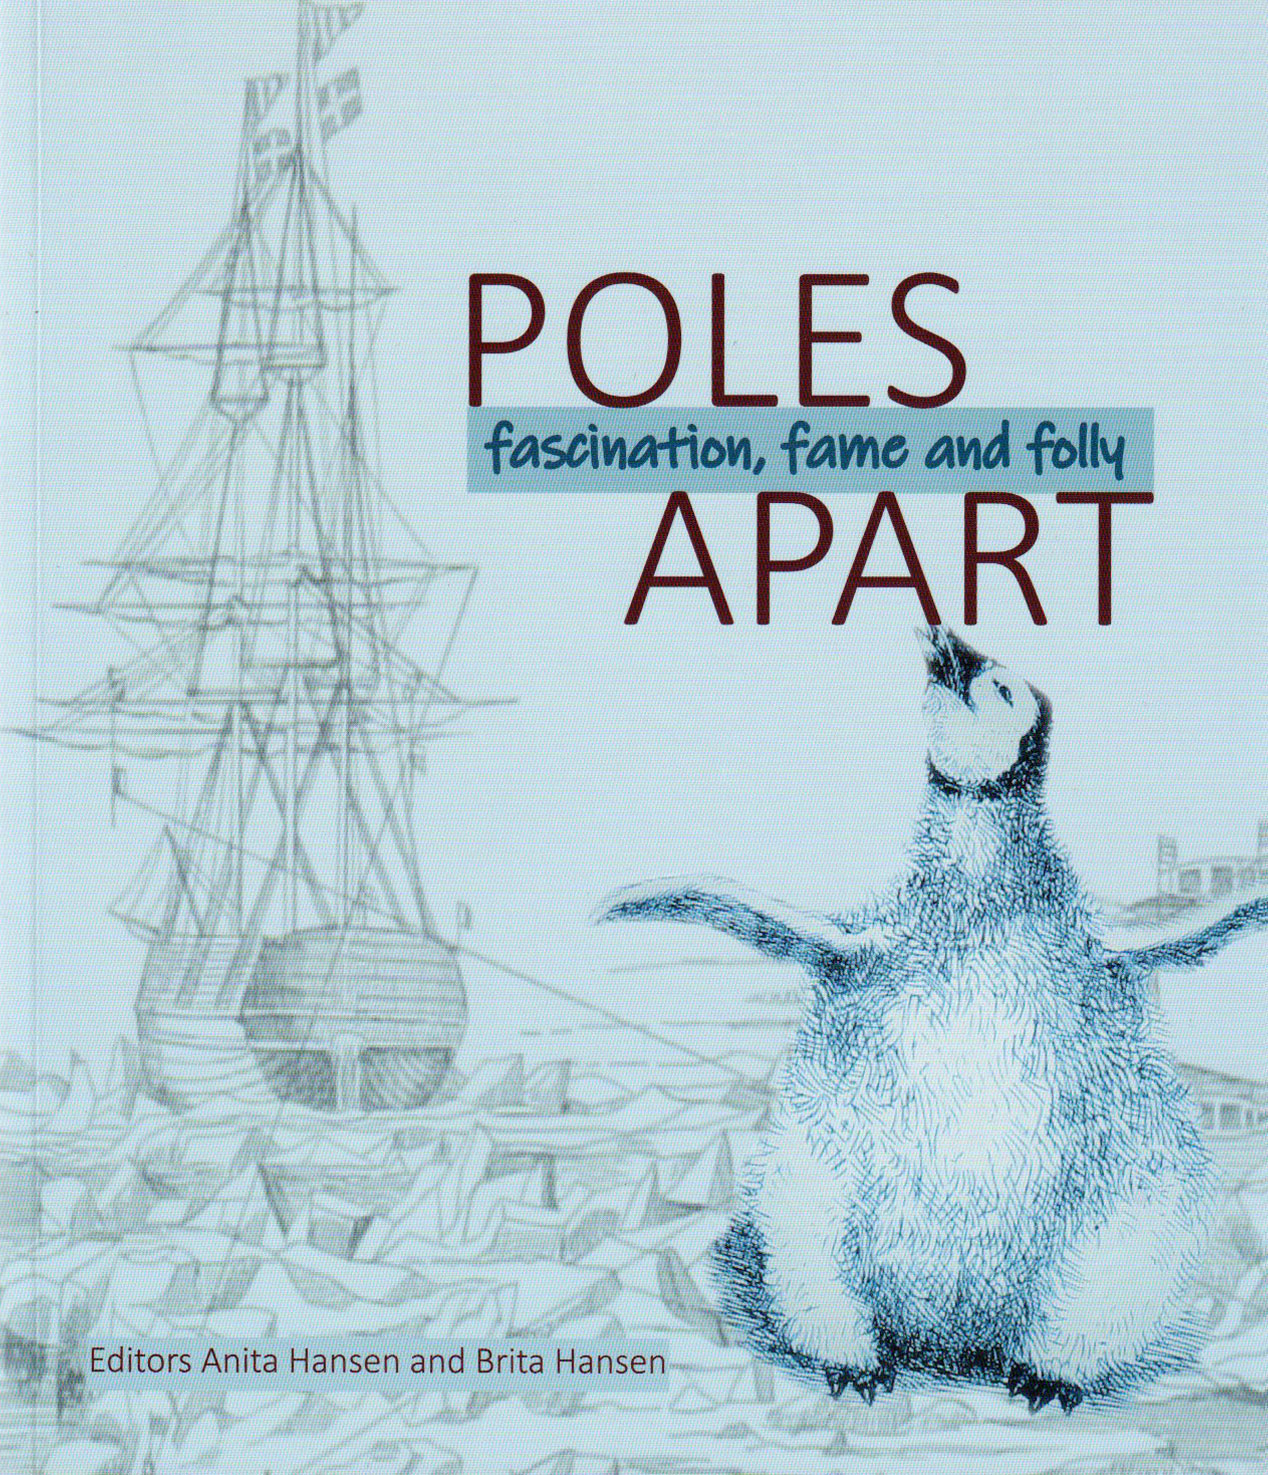 Poles Apart, fascination, fame and folly